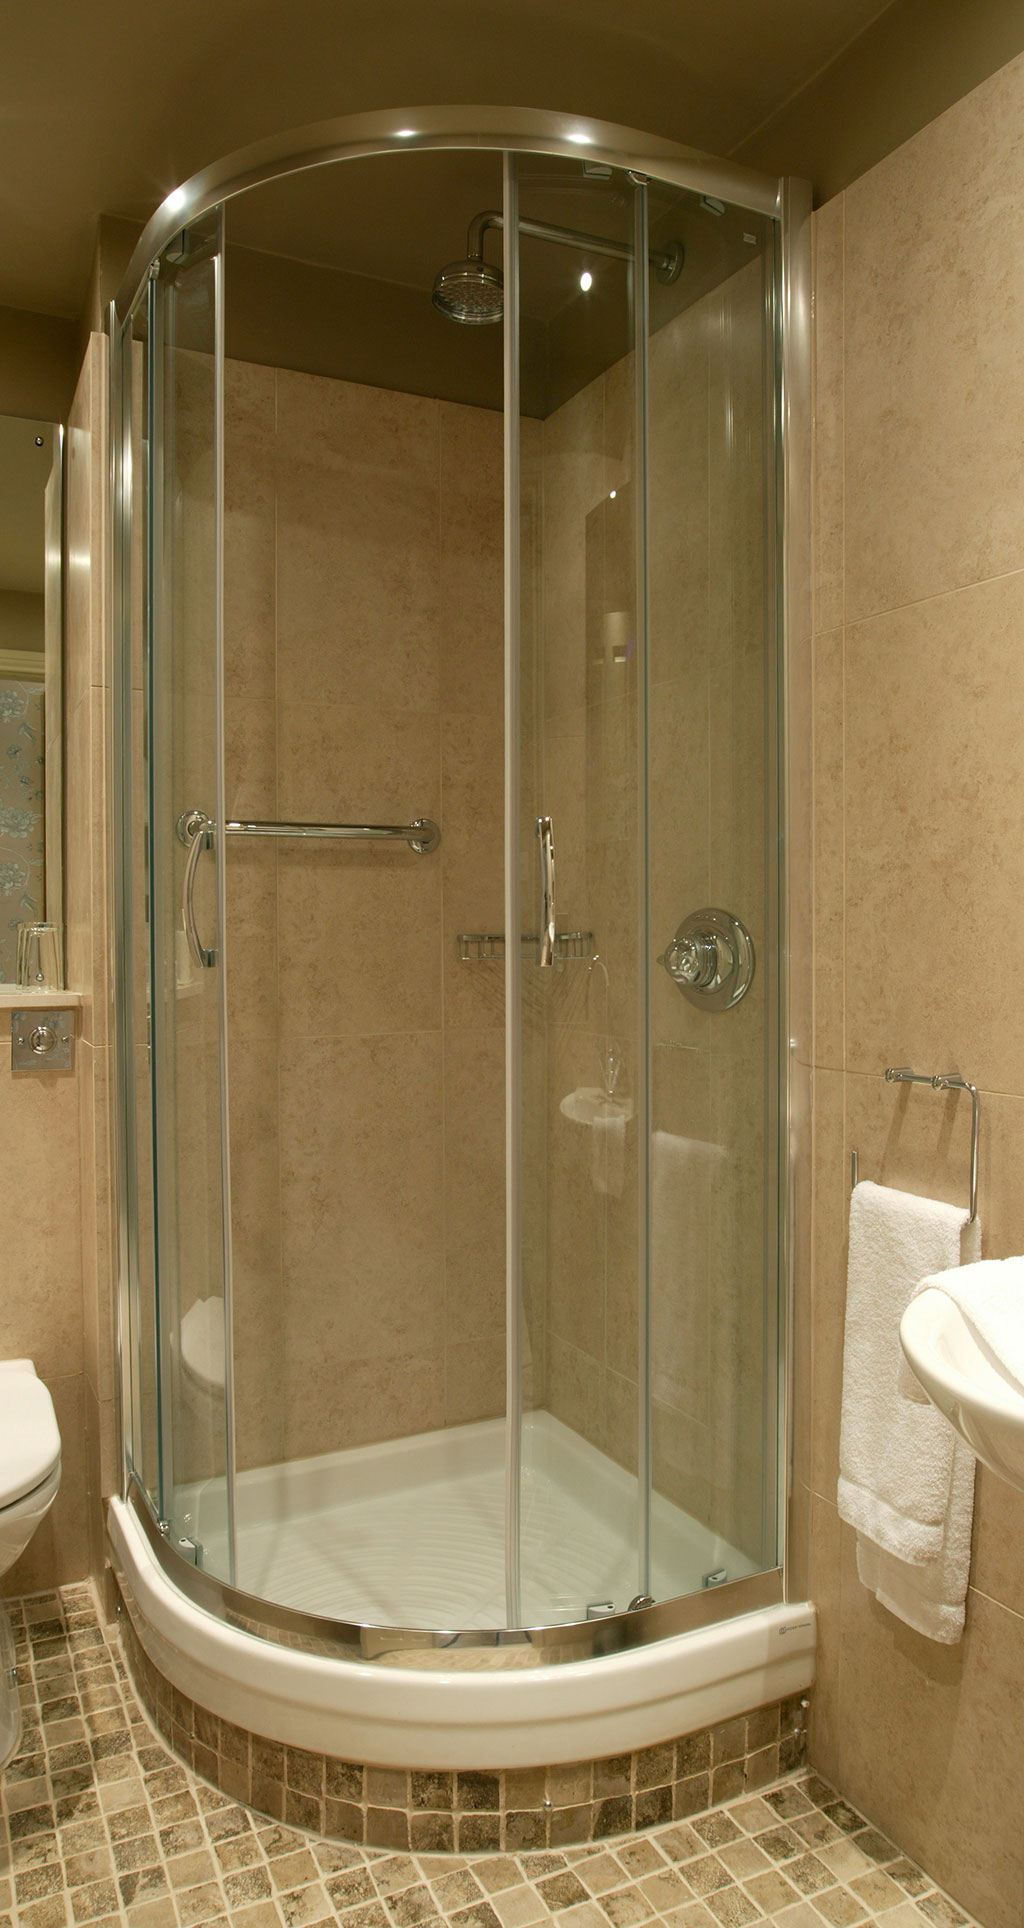 shower single room 5